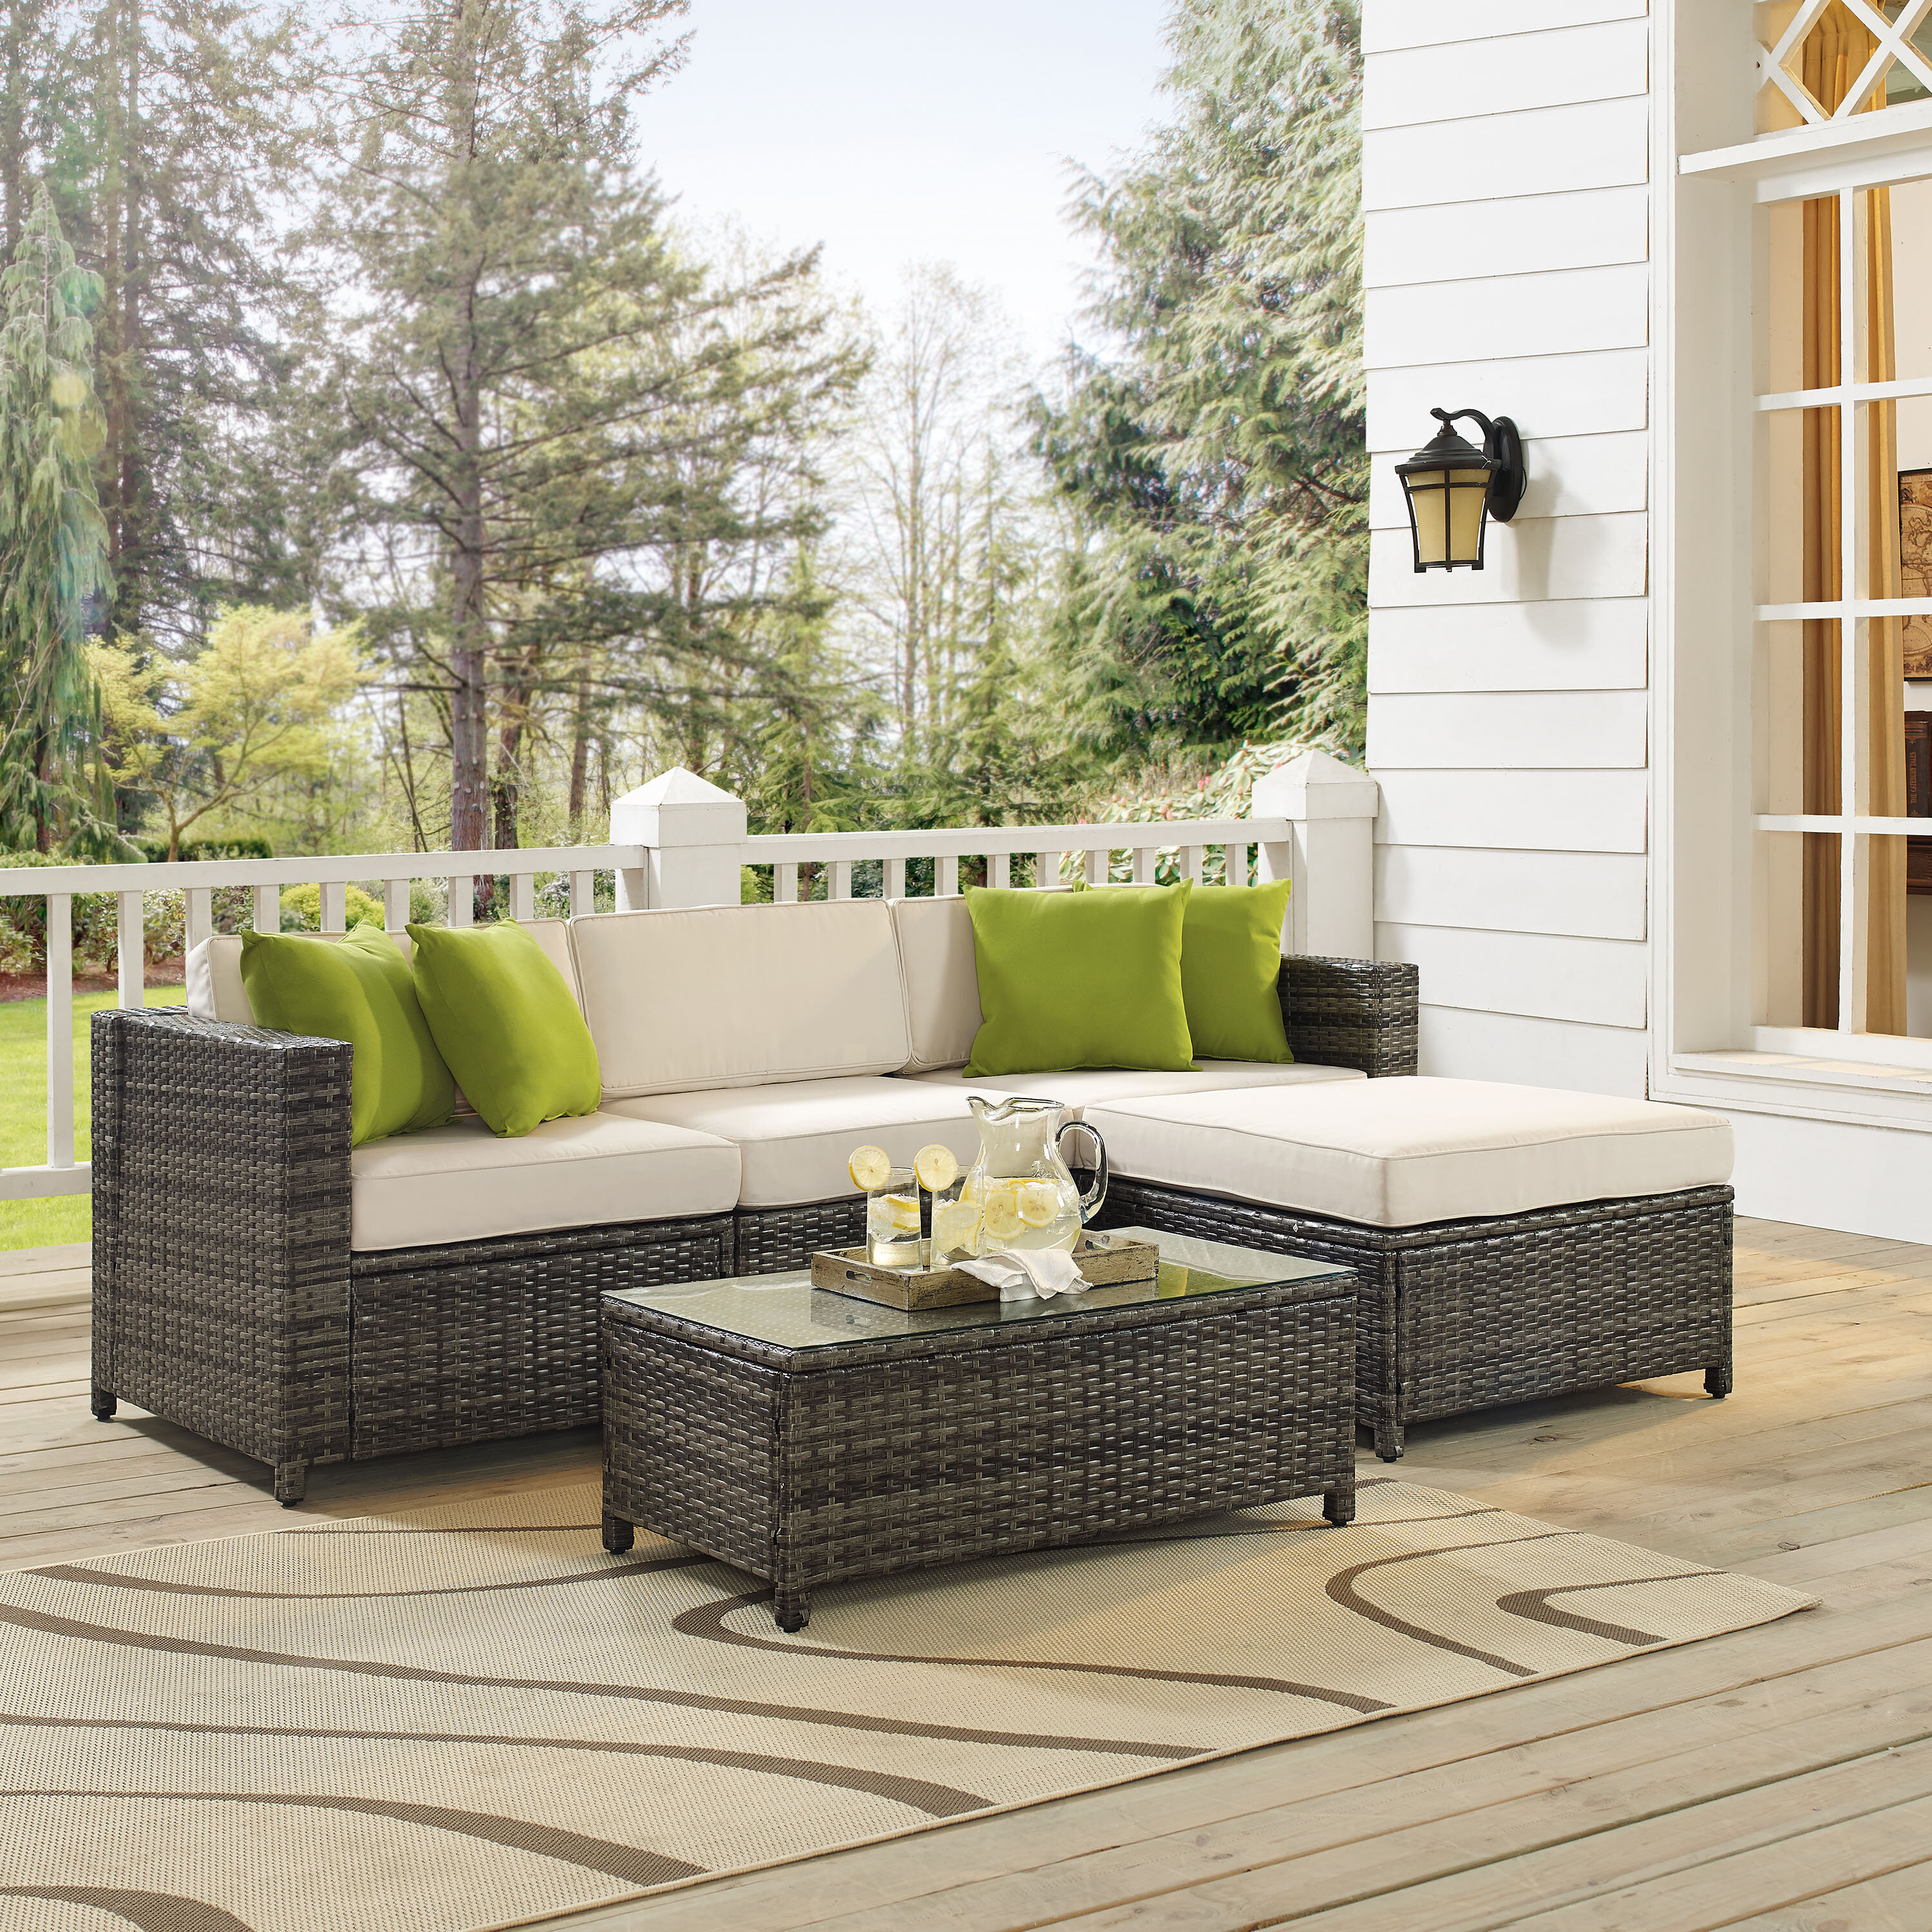 Carmelo 5 Piece Rattan Sectional Seating Group with Cushions